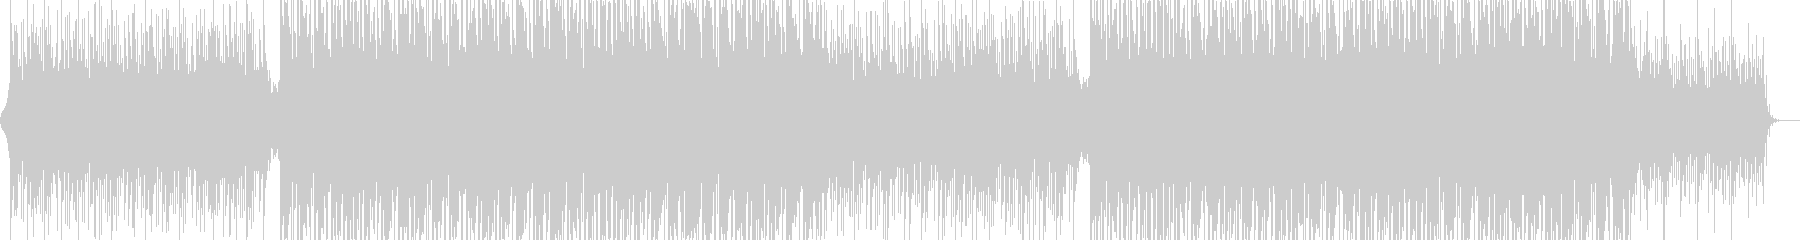 BGM that is positive and steadily progressing's unreproduced waveform